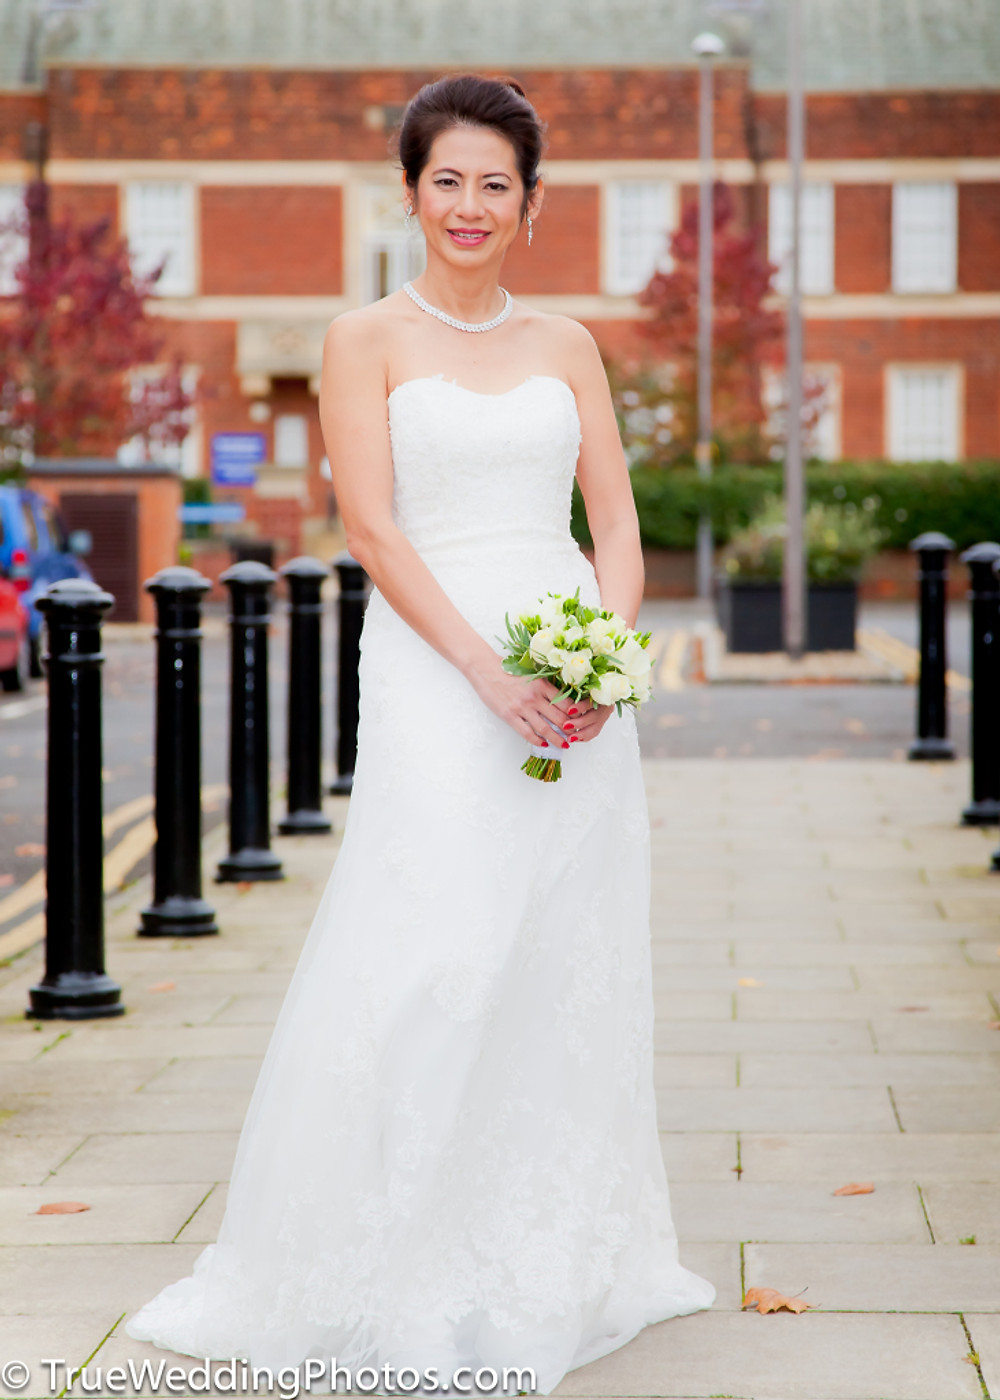 TrueWeddingPhotos.com-9641